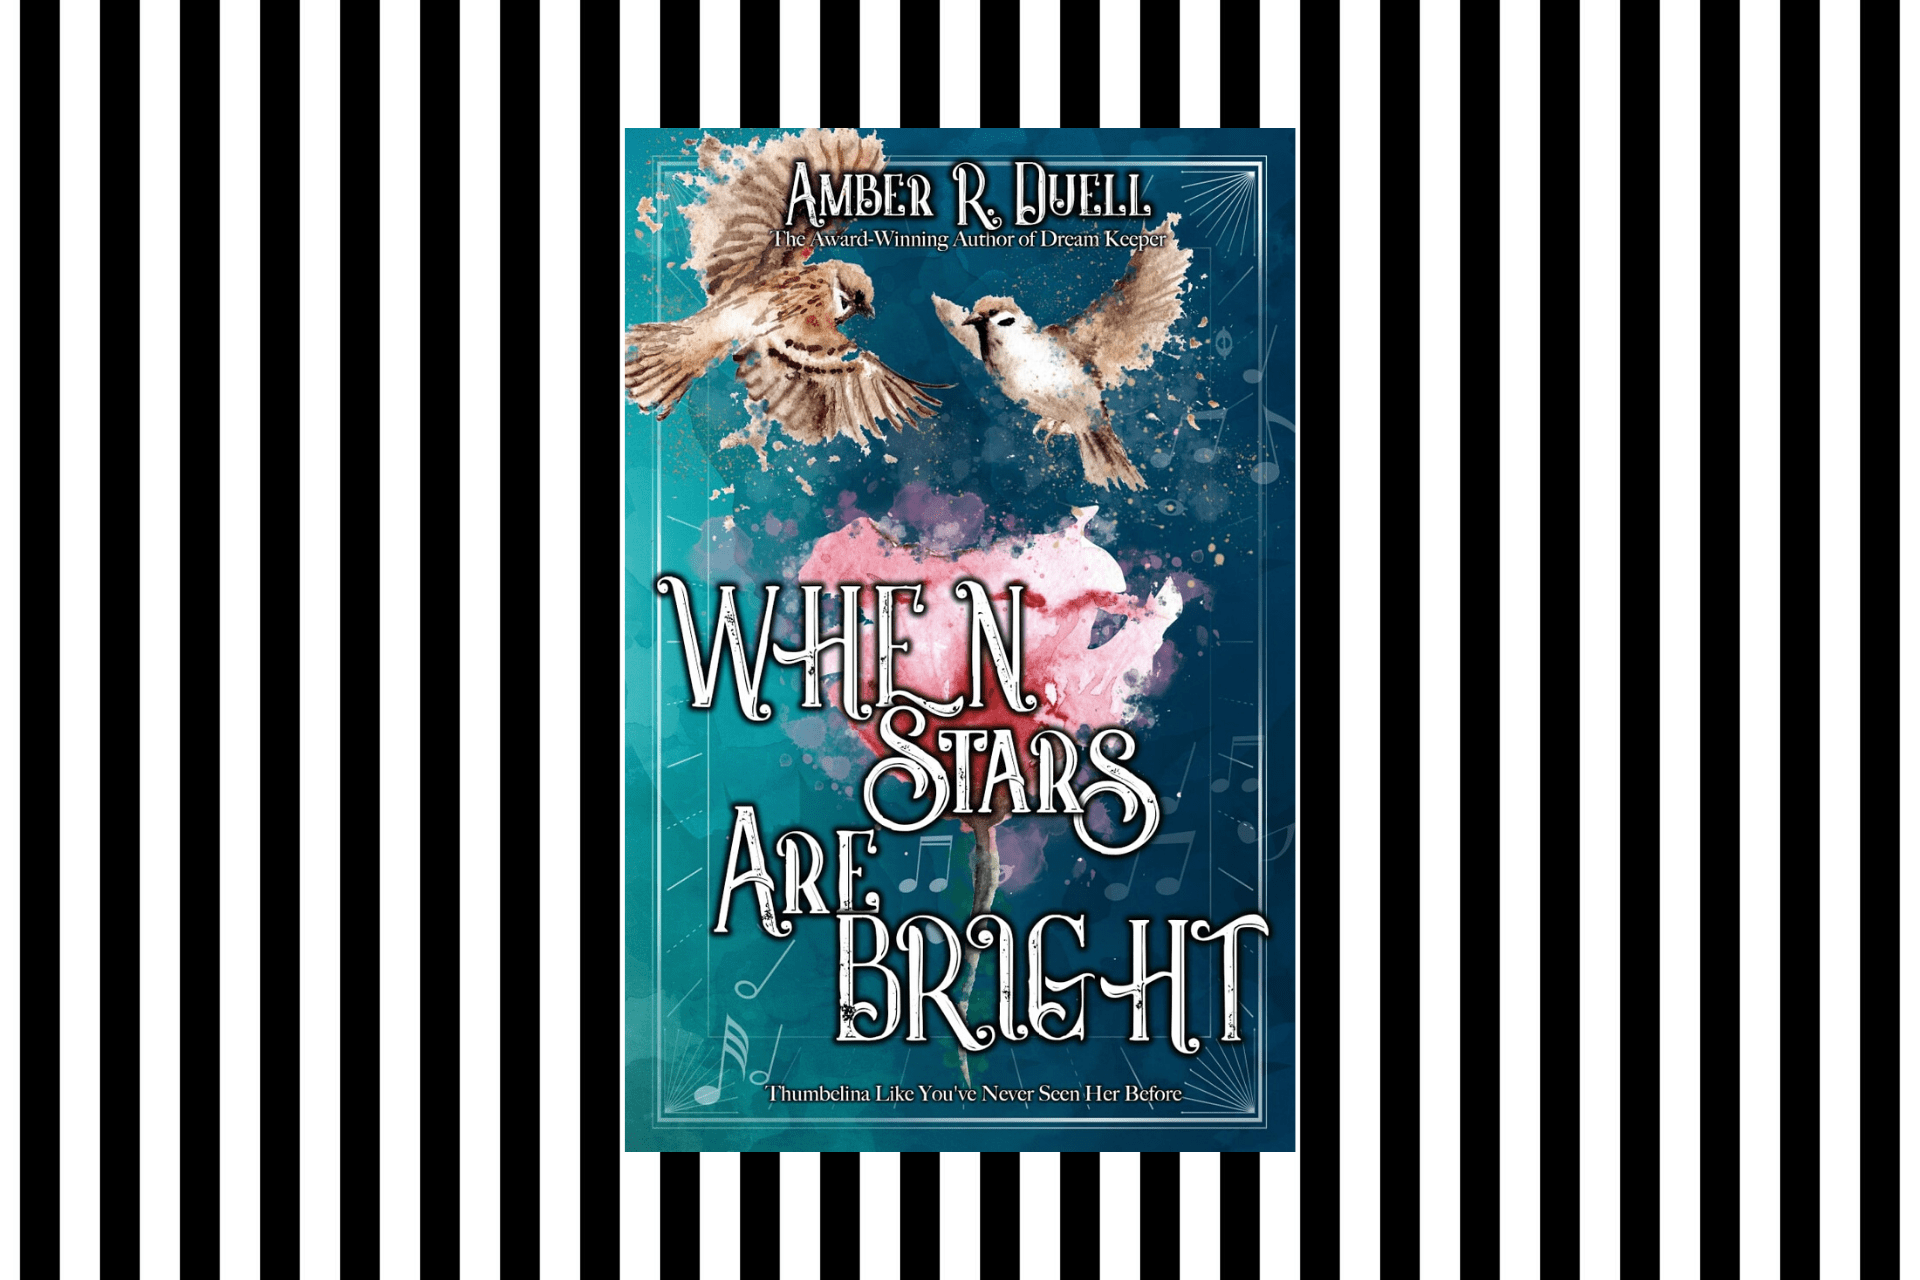 The cover of When Stars Are Bright by Amber R Duell